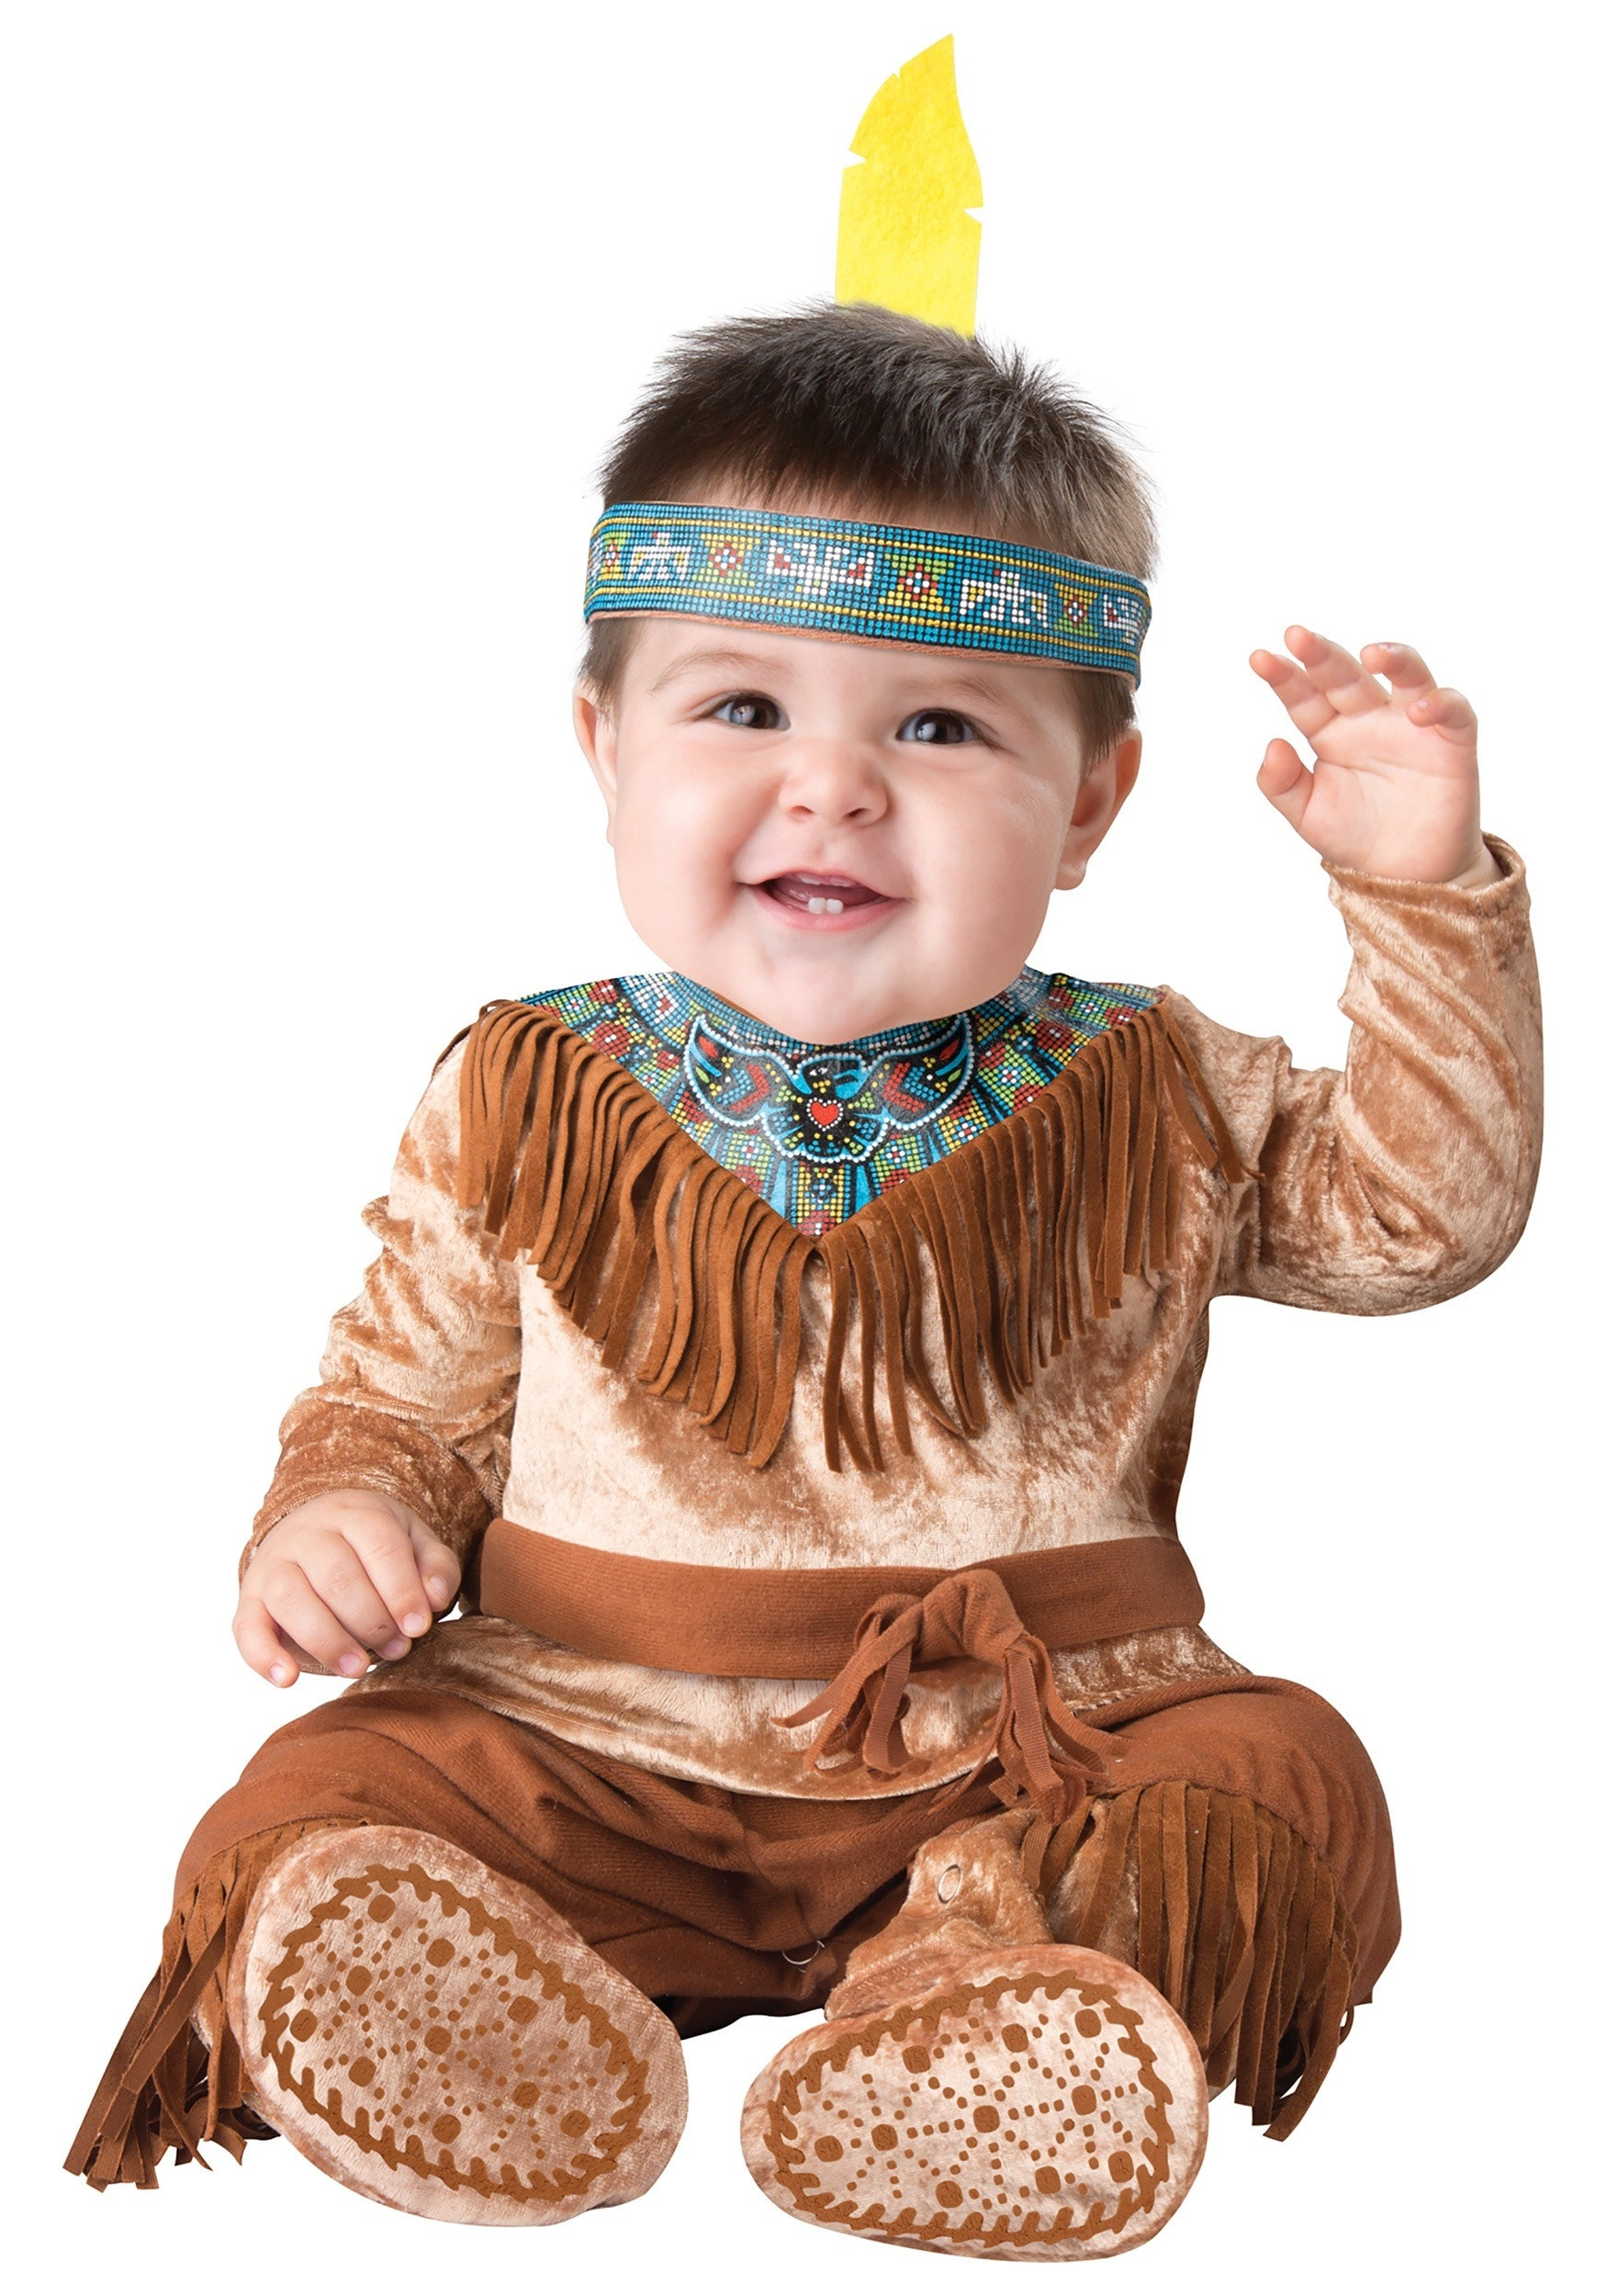 All Of The Sexist Racist u0026 Just Mean Halloween Costumes You Should Not Dress Your Kid As This Year  sc 1 st  Romper : native american kids costumes  - Germanpascual.Com